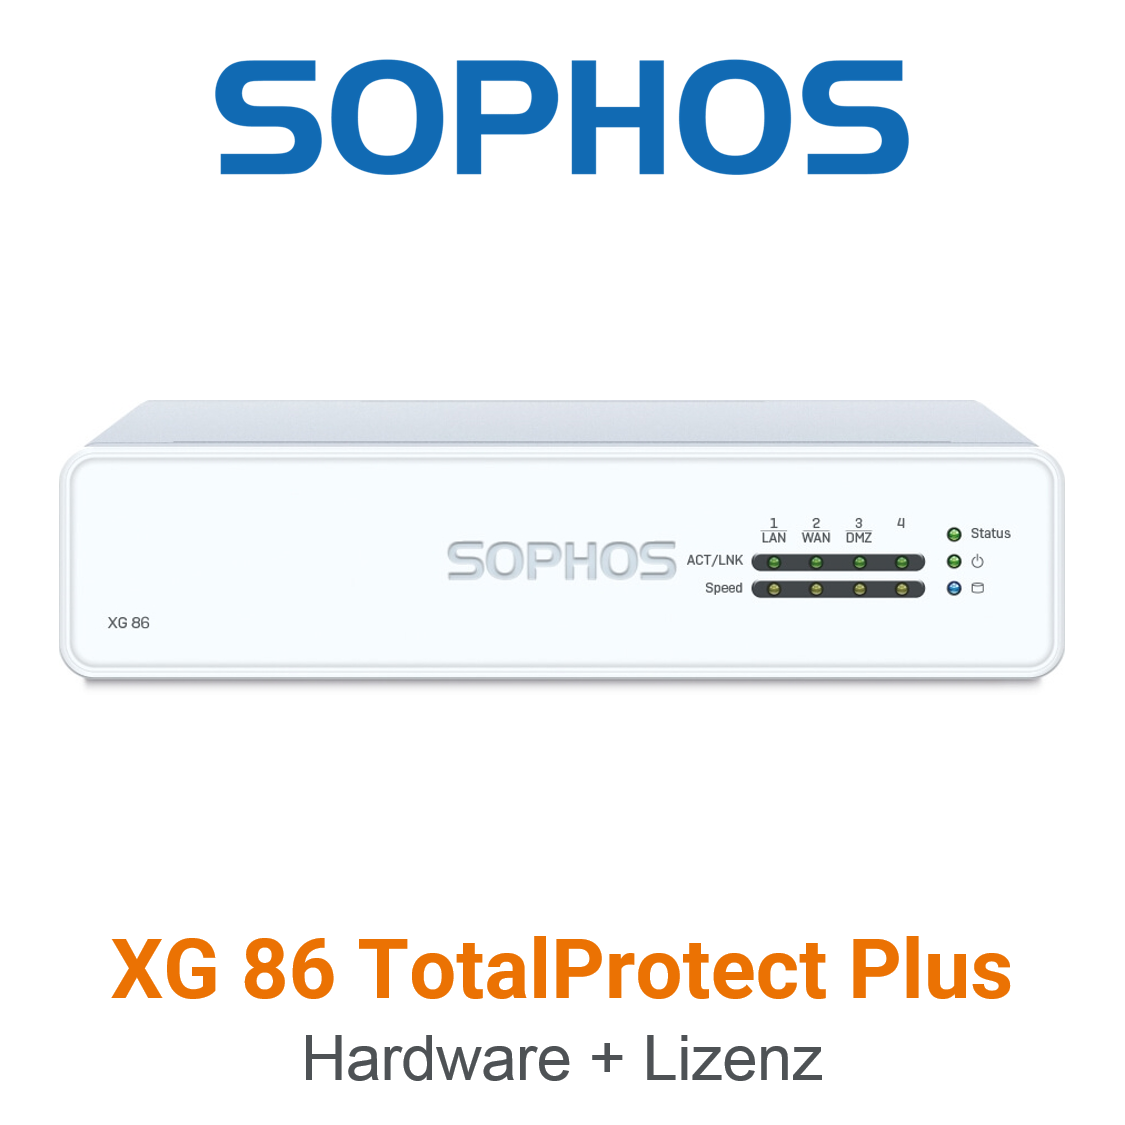 Sophos XG 86 TotalProtect Plus Bundle (Hardware + Lizenz)